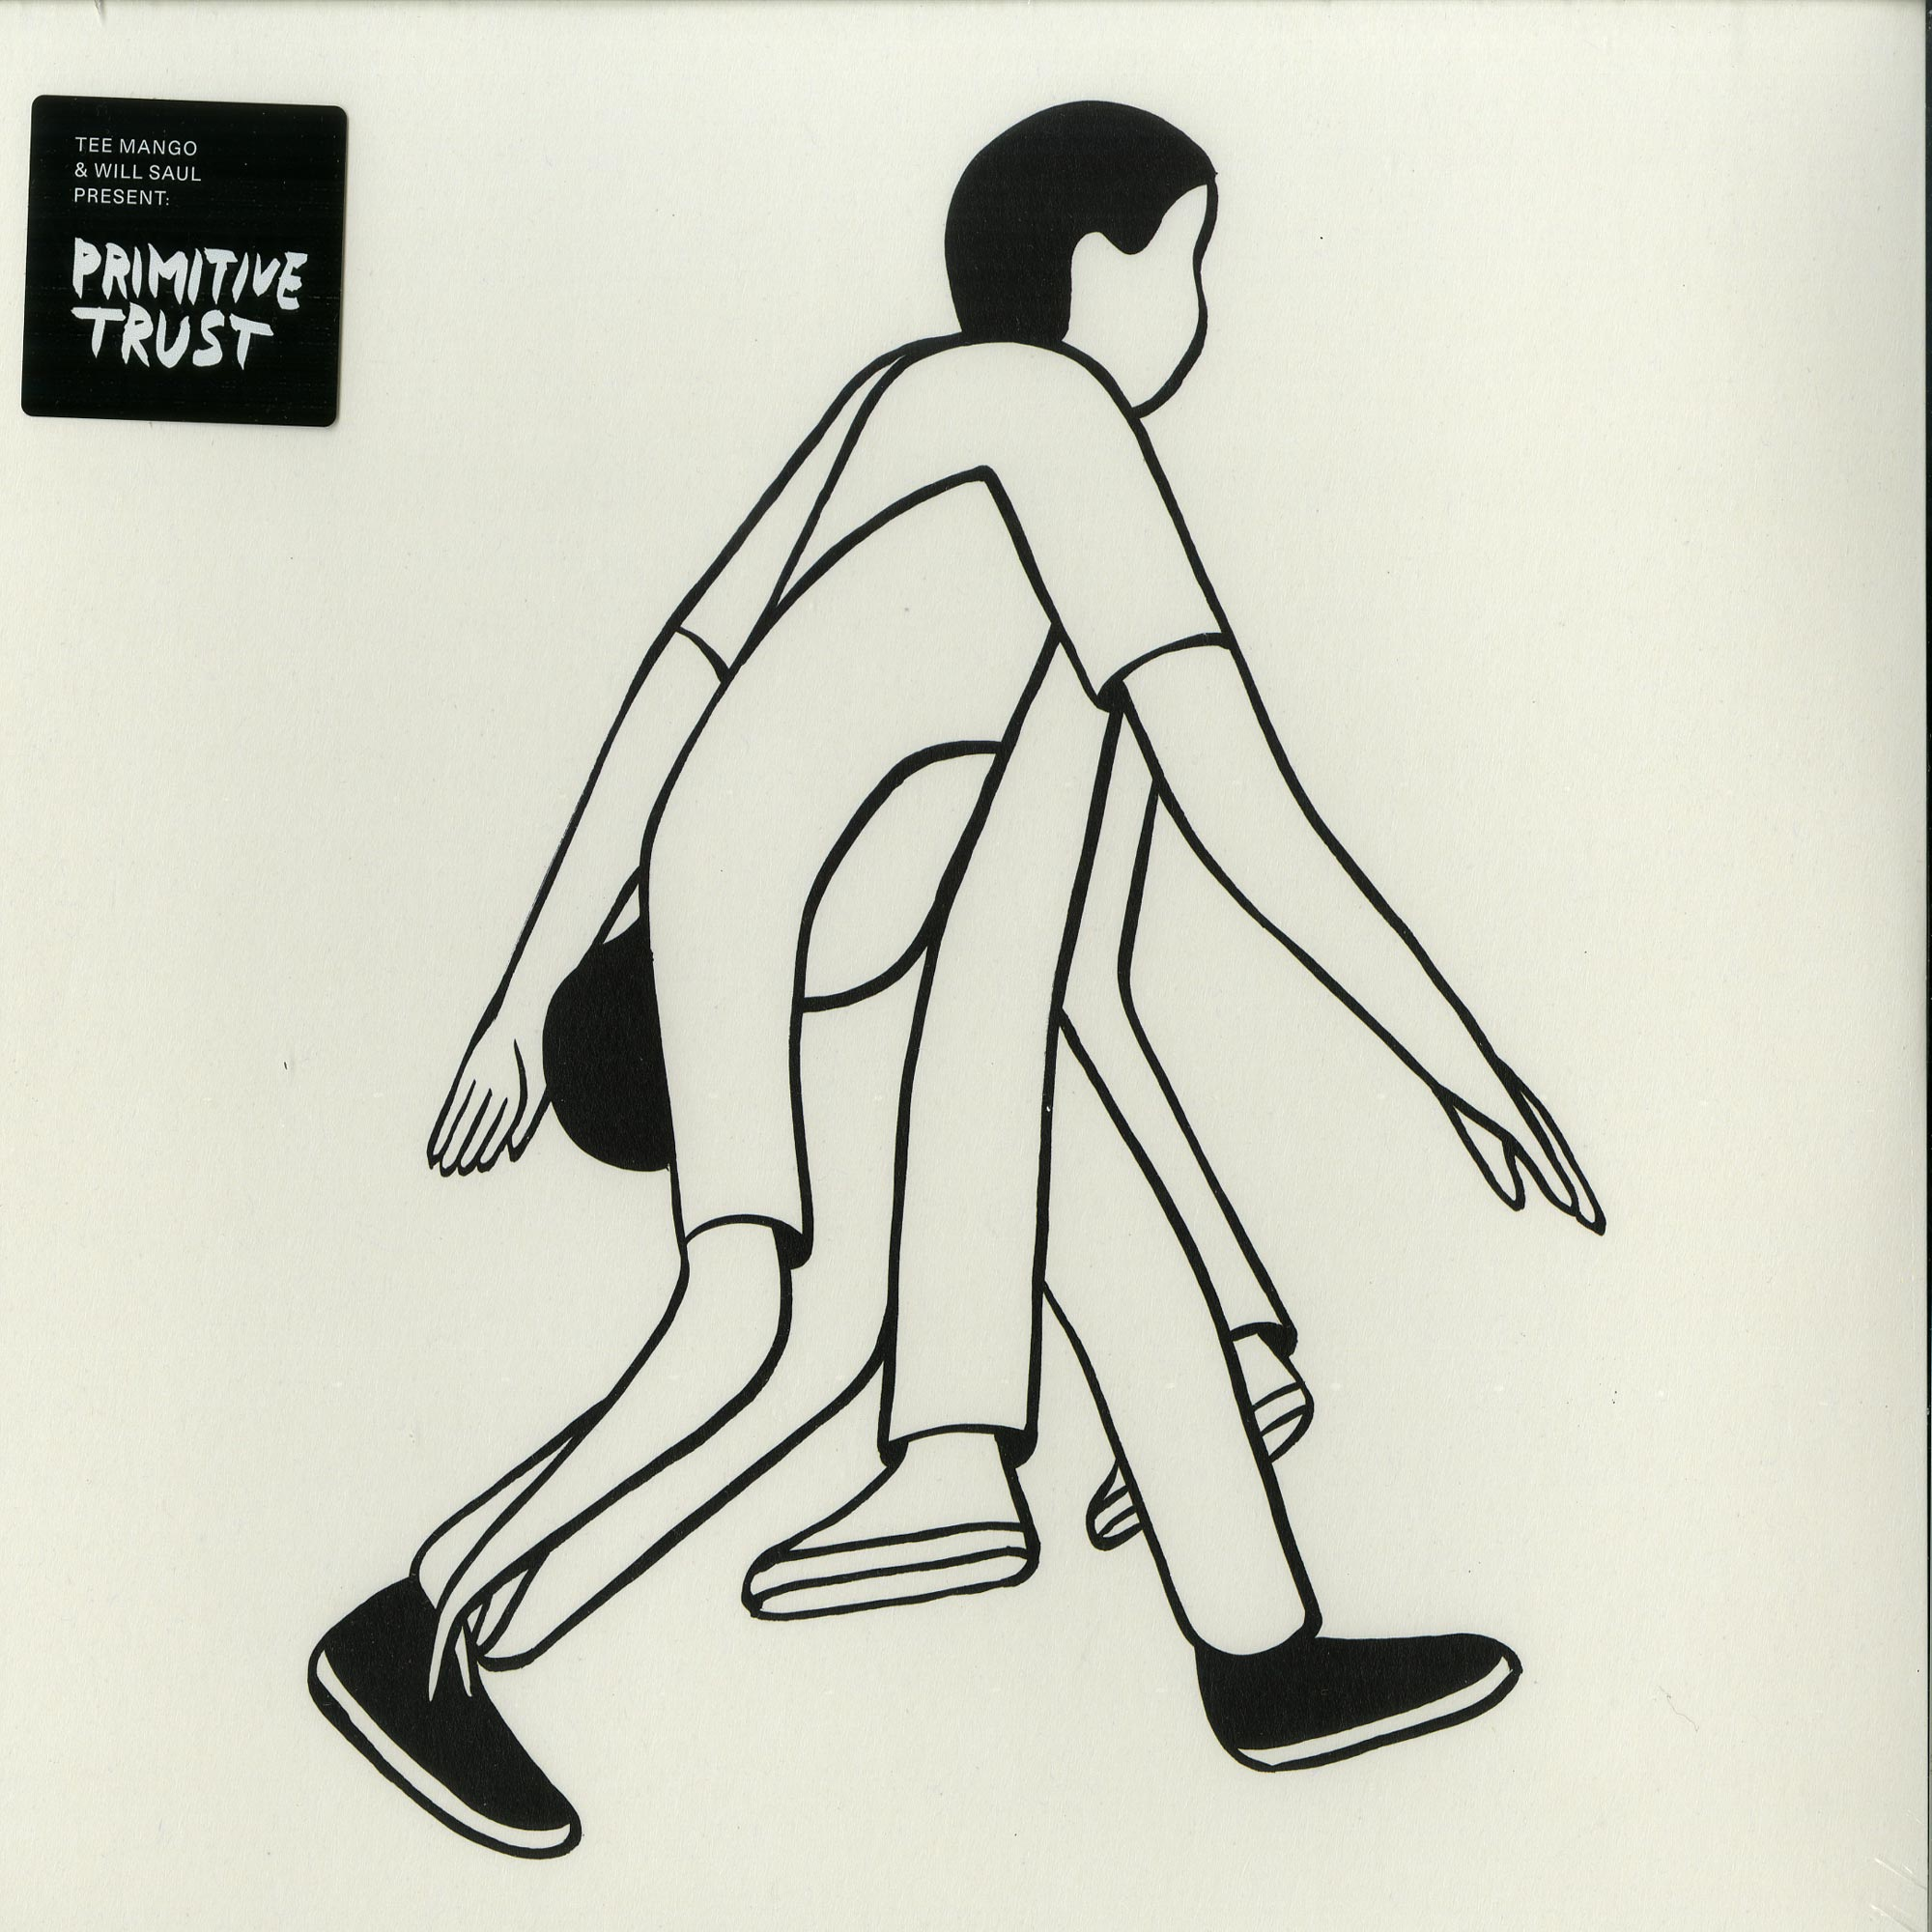 Primitive Trust - LITTLE LOVE EP